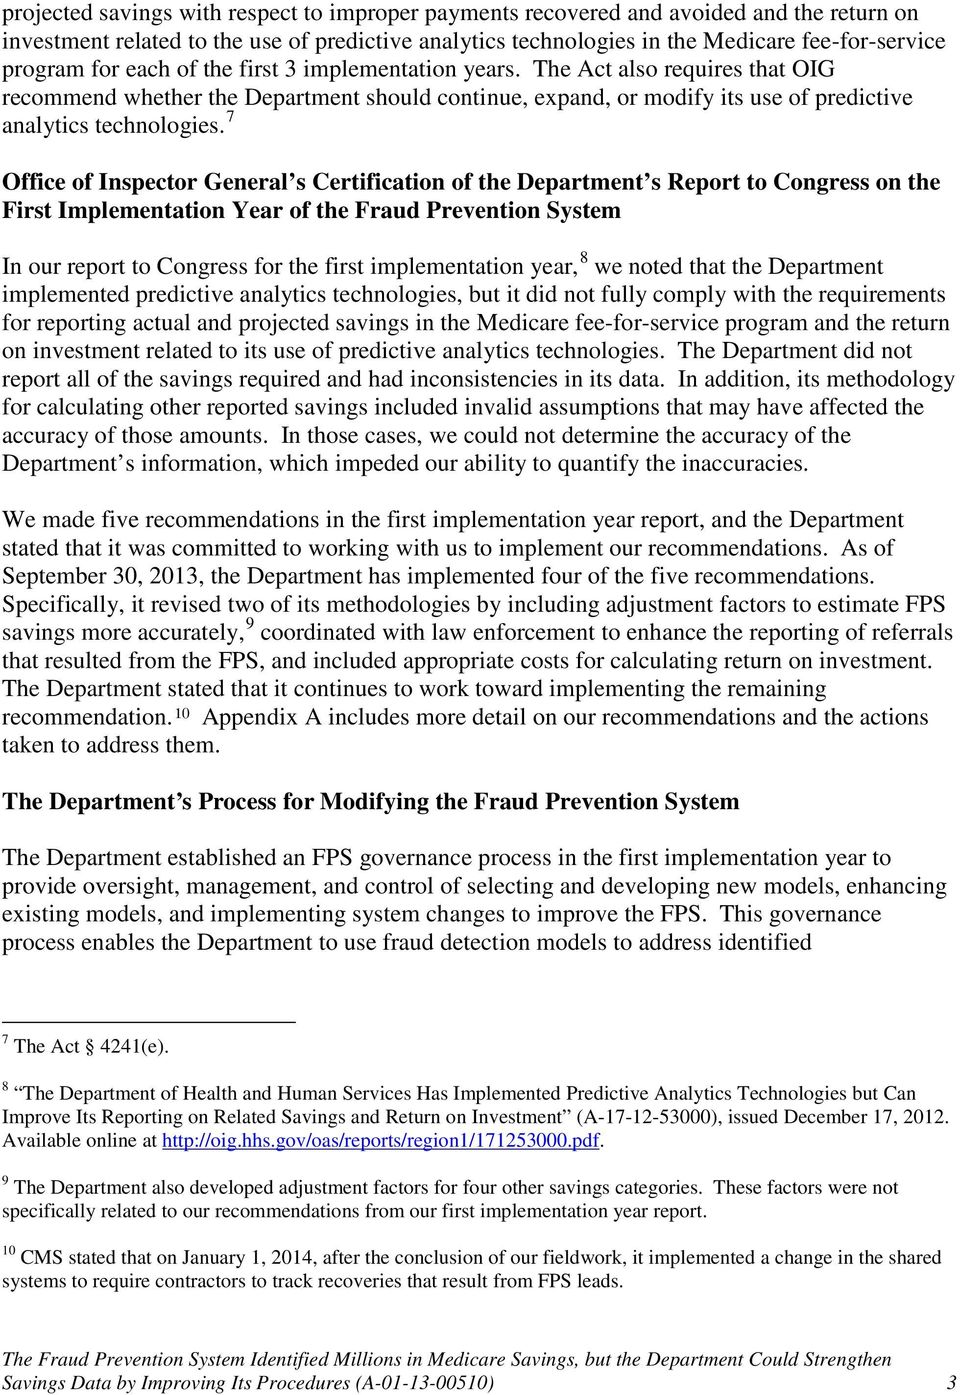 7 Office of Inspector General s Certification of the Department s Report to Congress on the First Implementation Year of the Fraud Prevention System In our report to Congress for the first